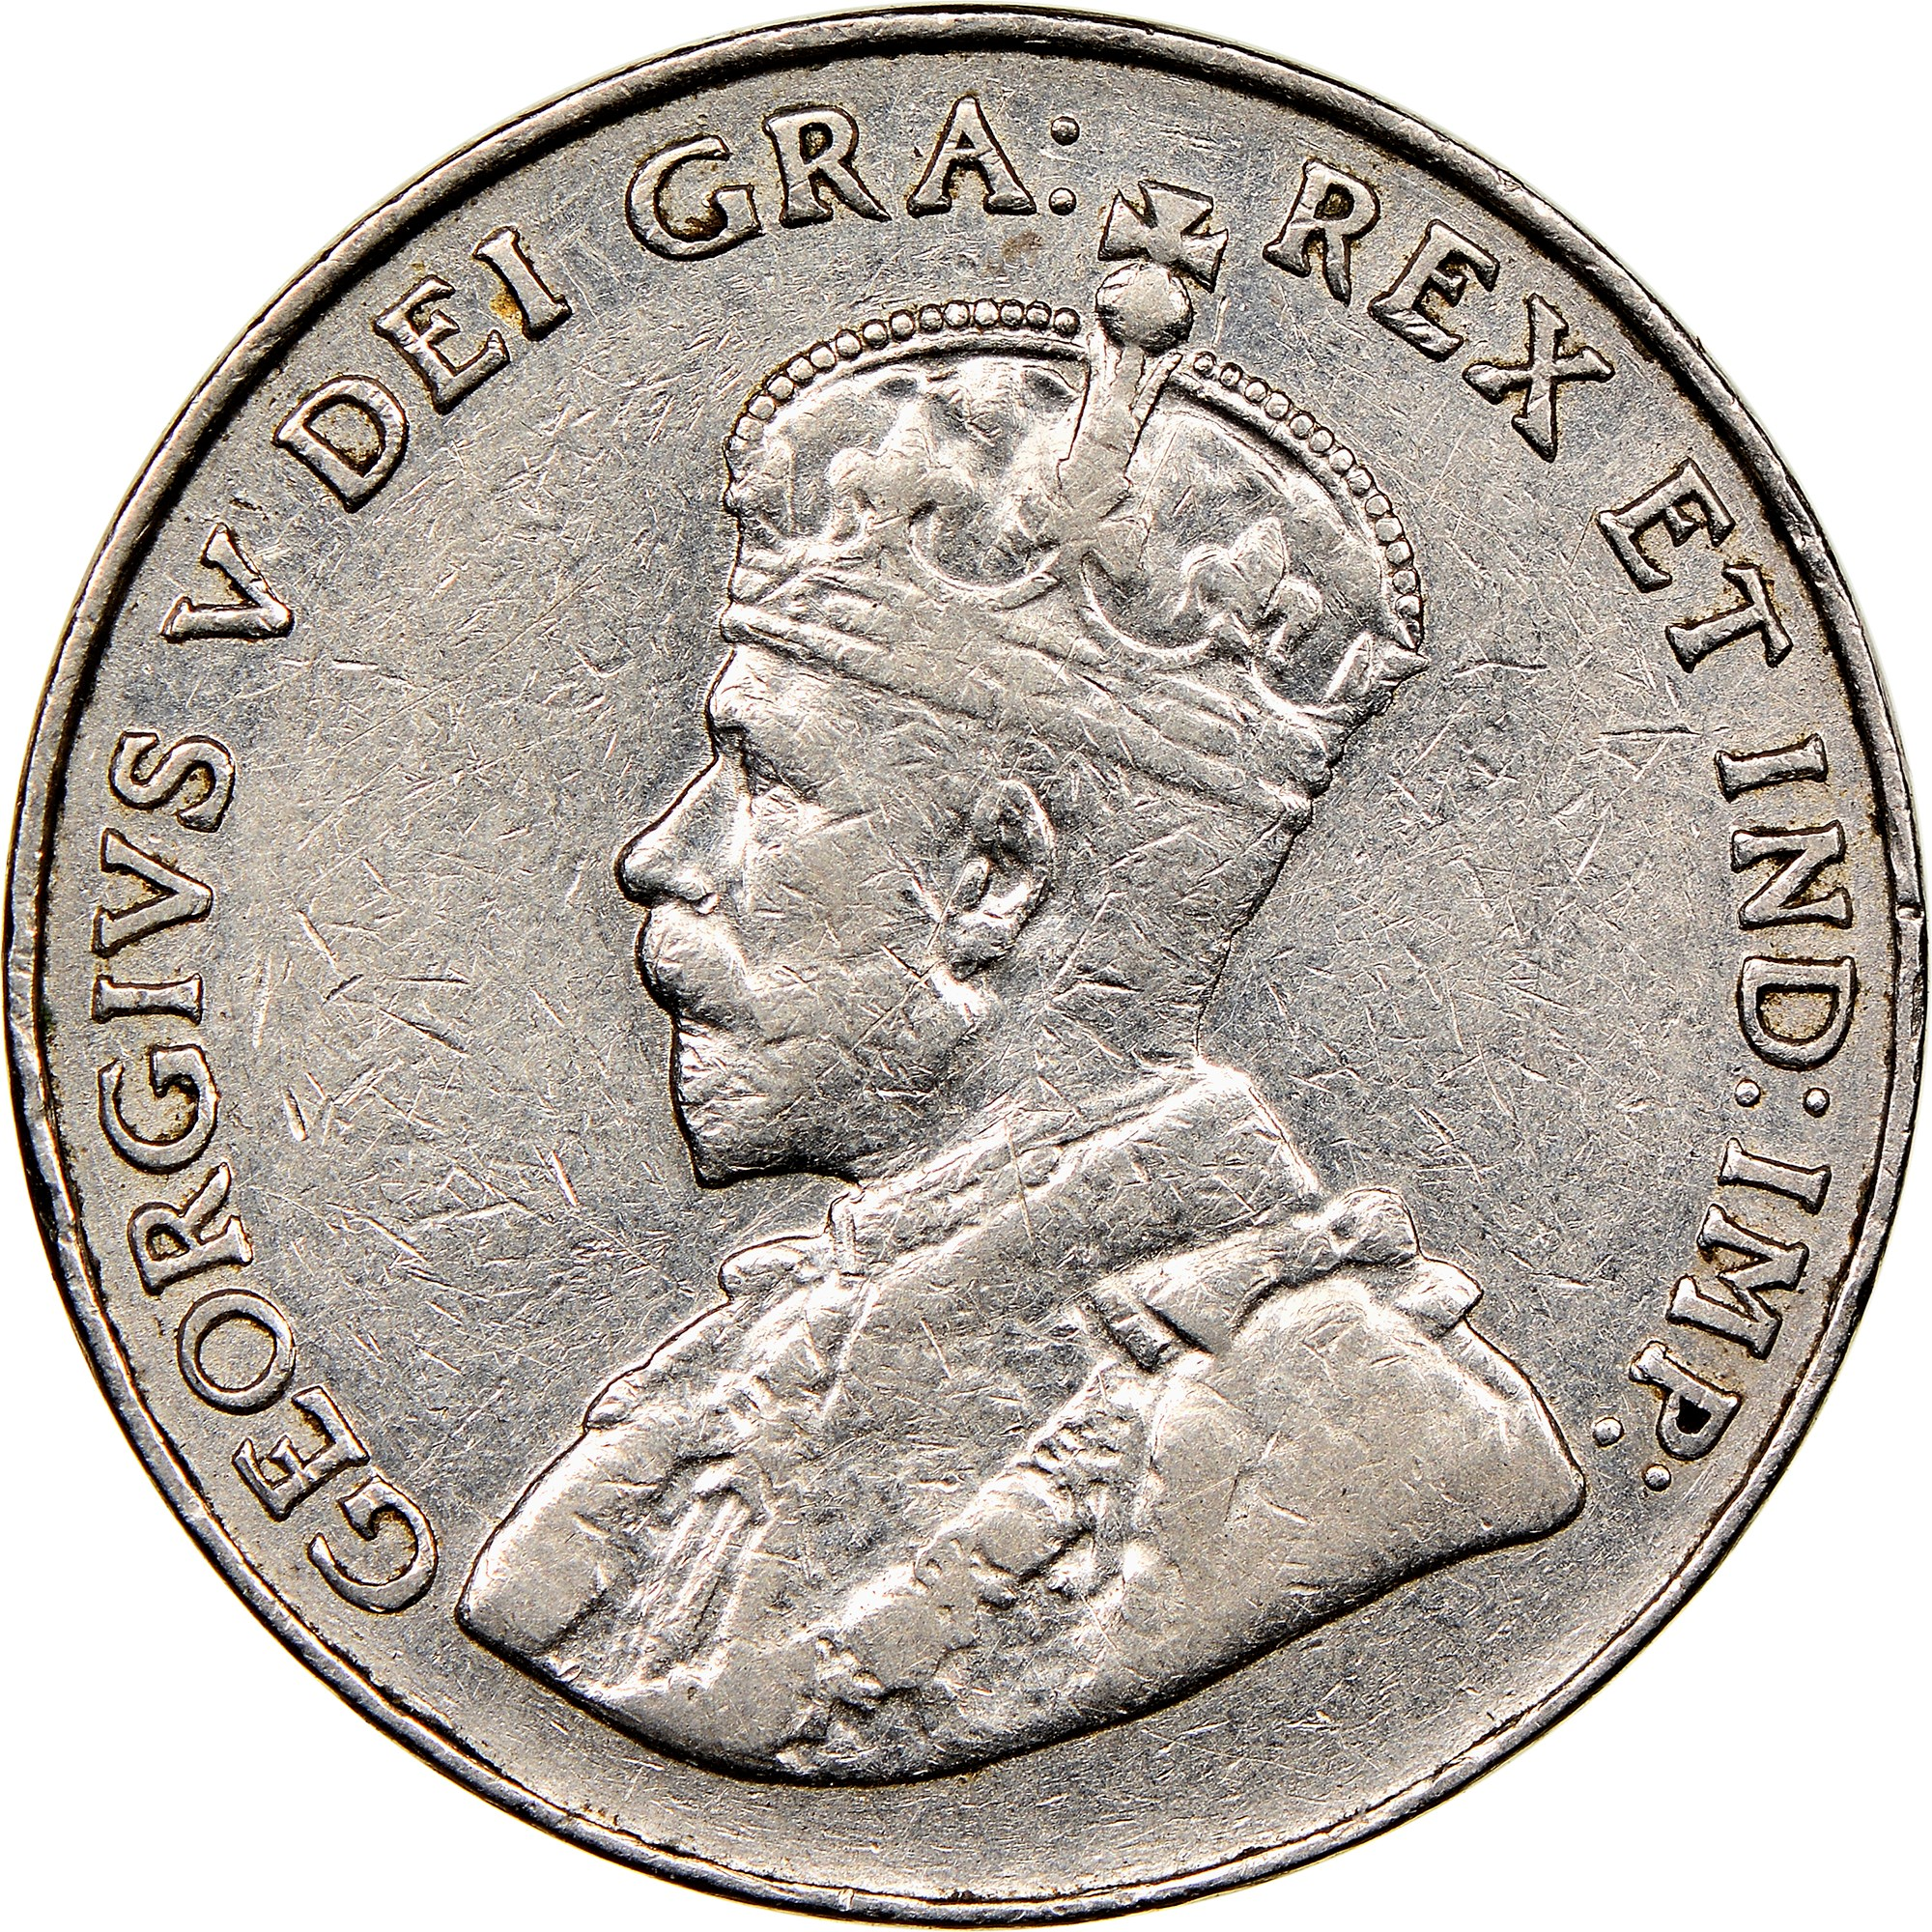 Canada 5 Cents obverse